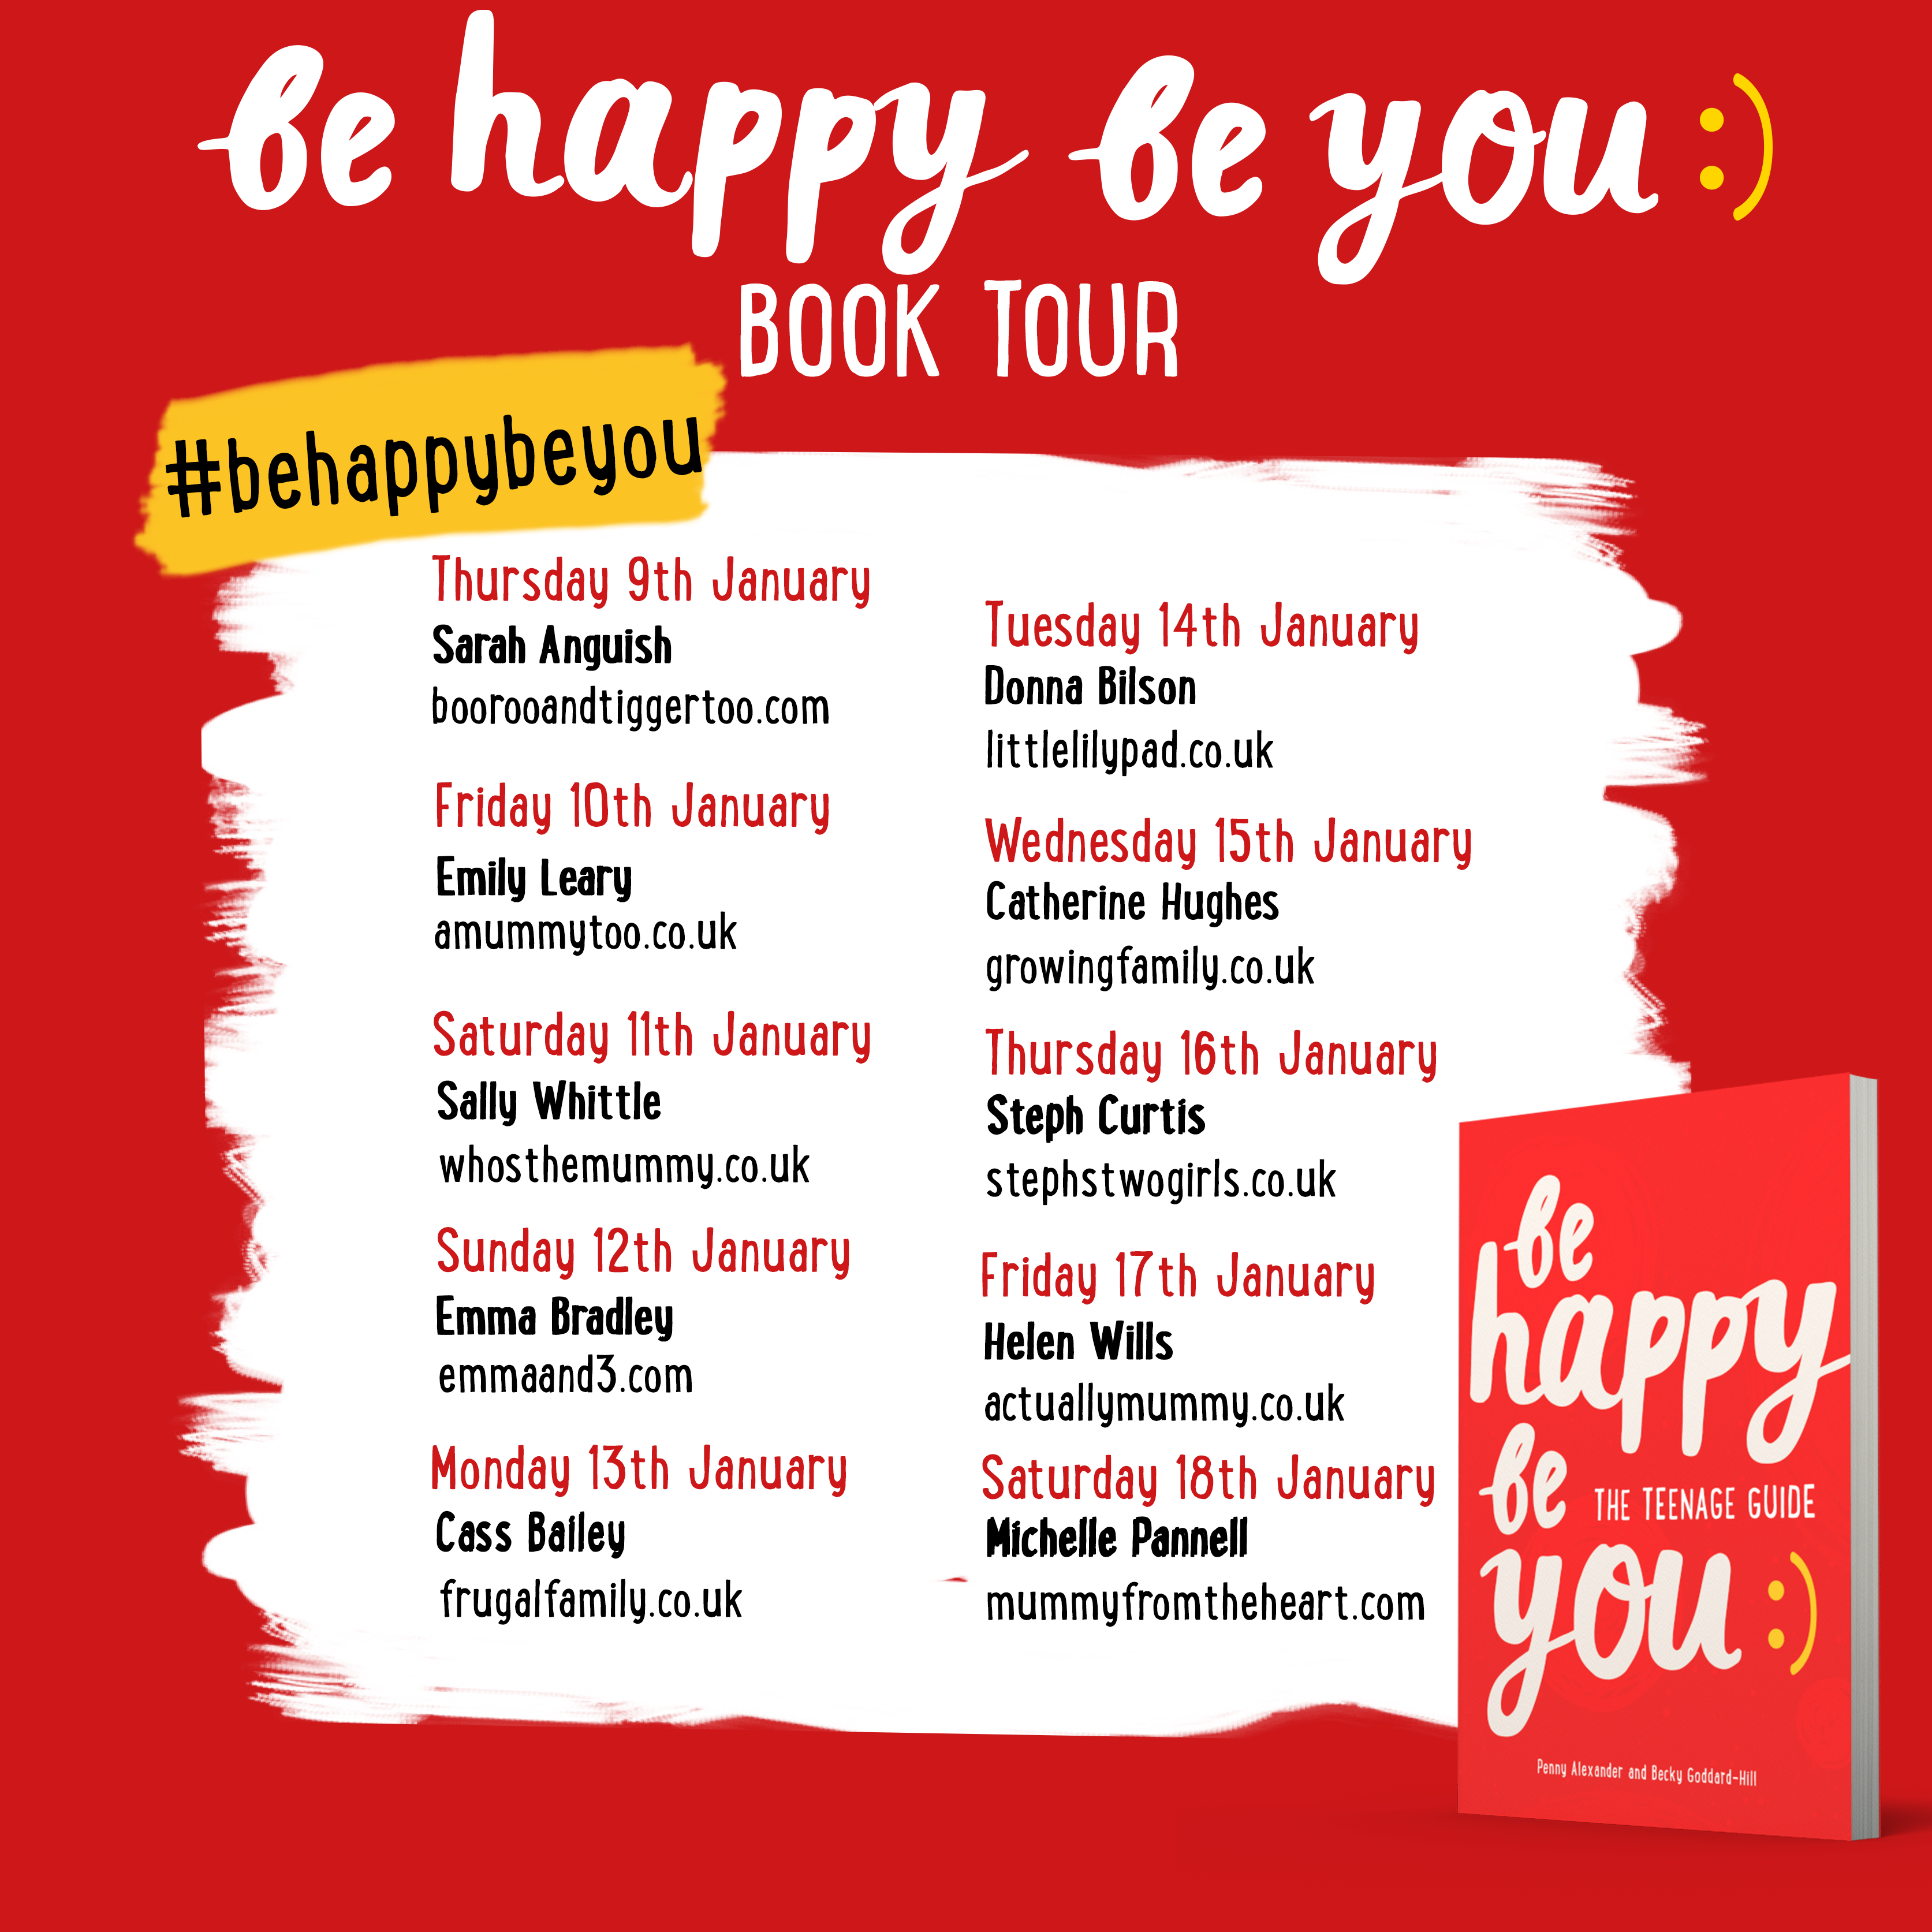 The Be Happy Be You Book Tour